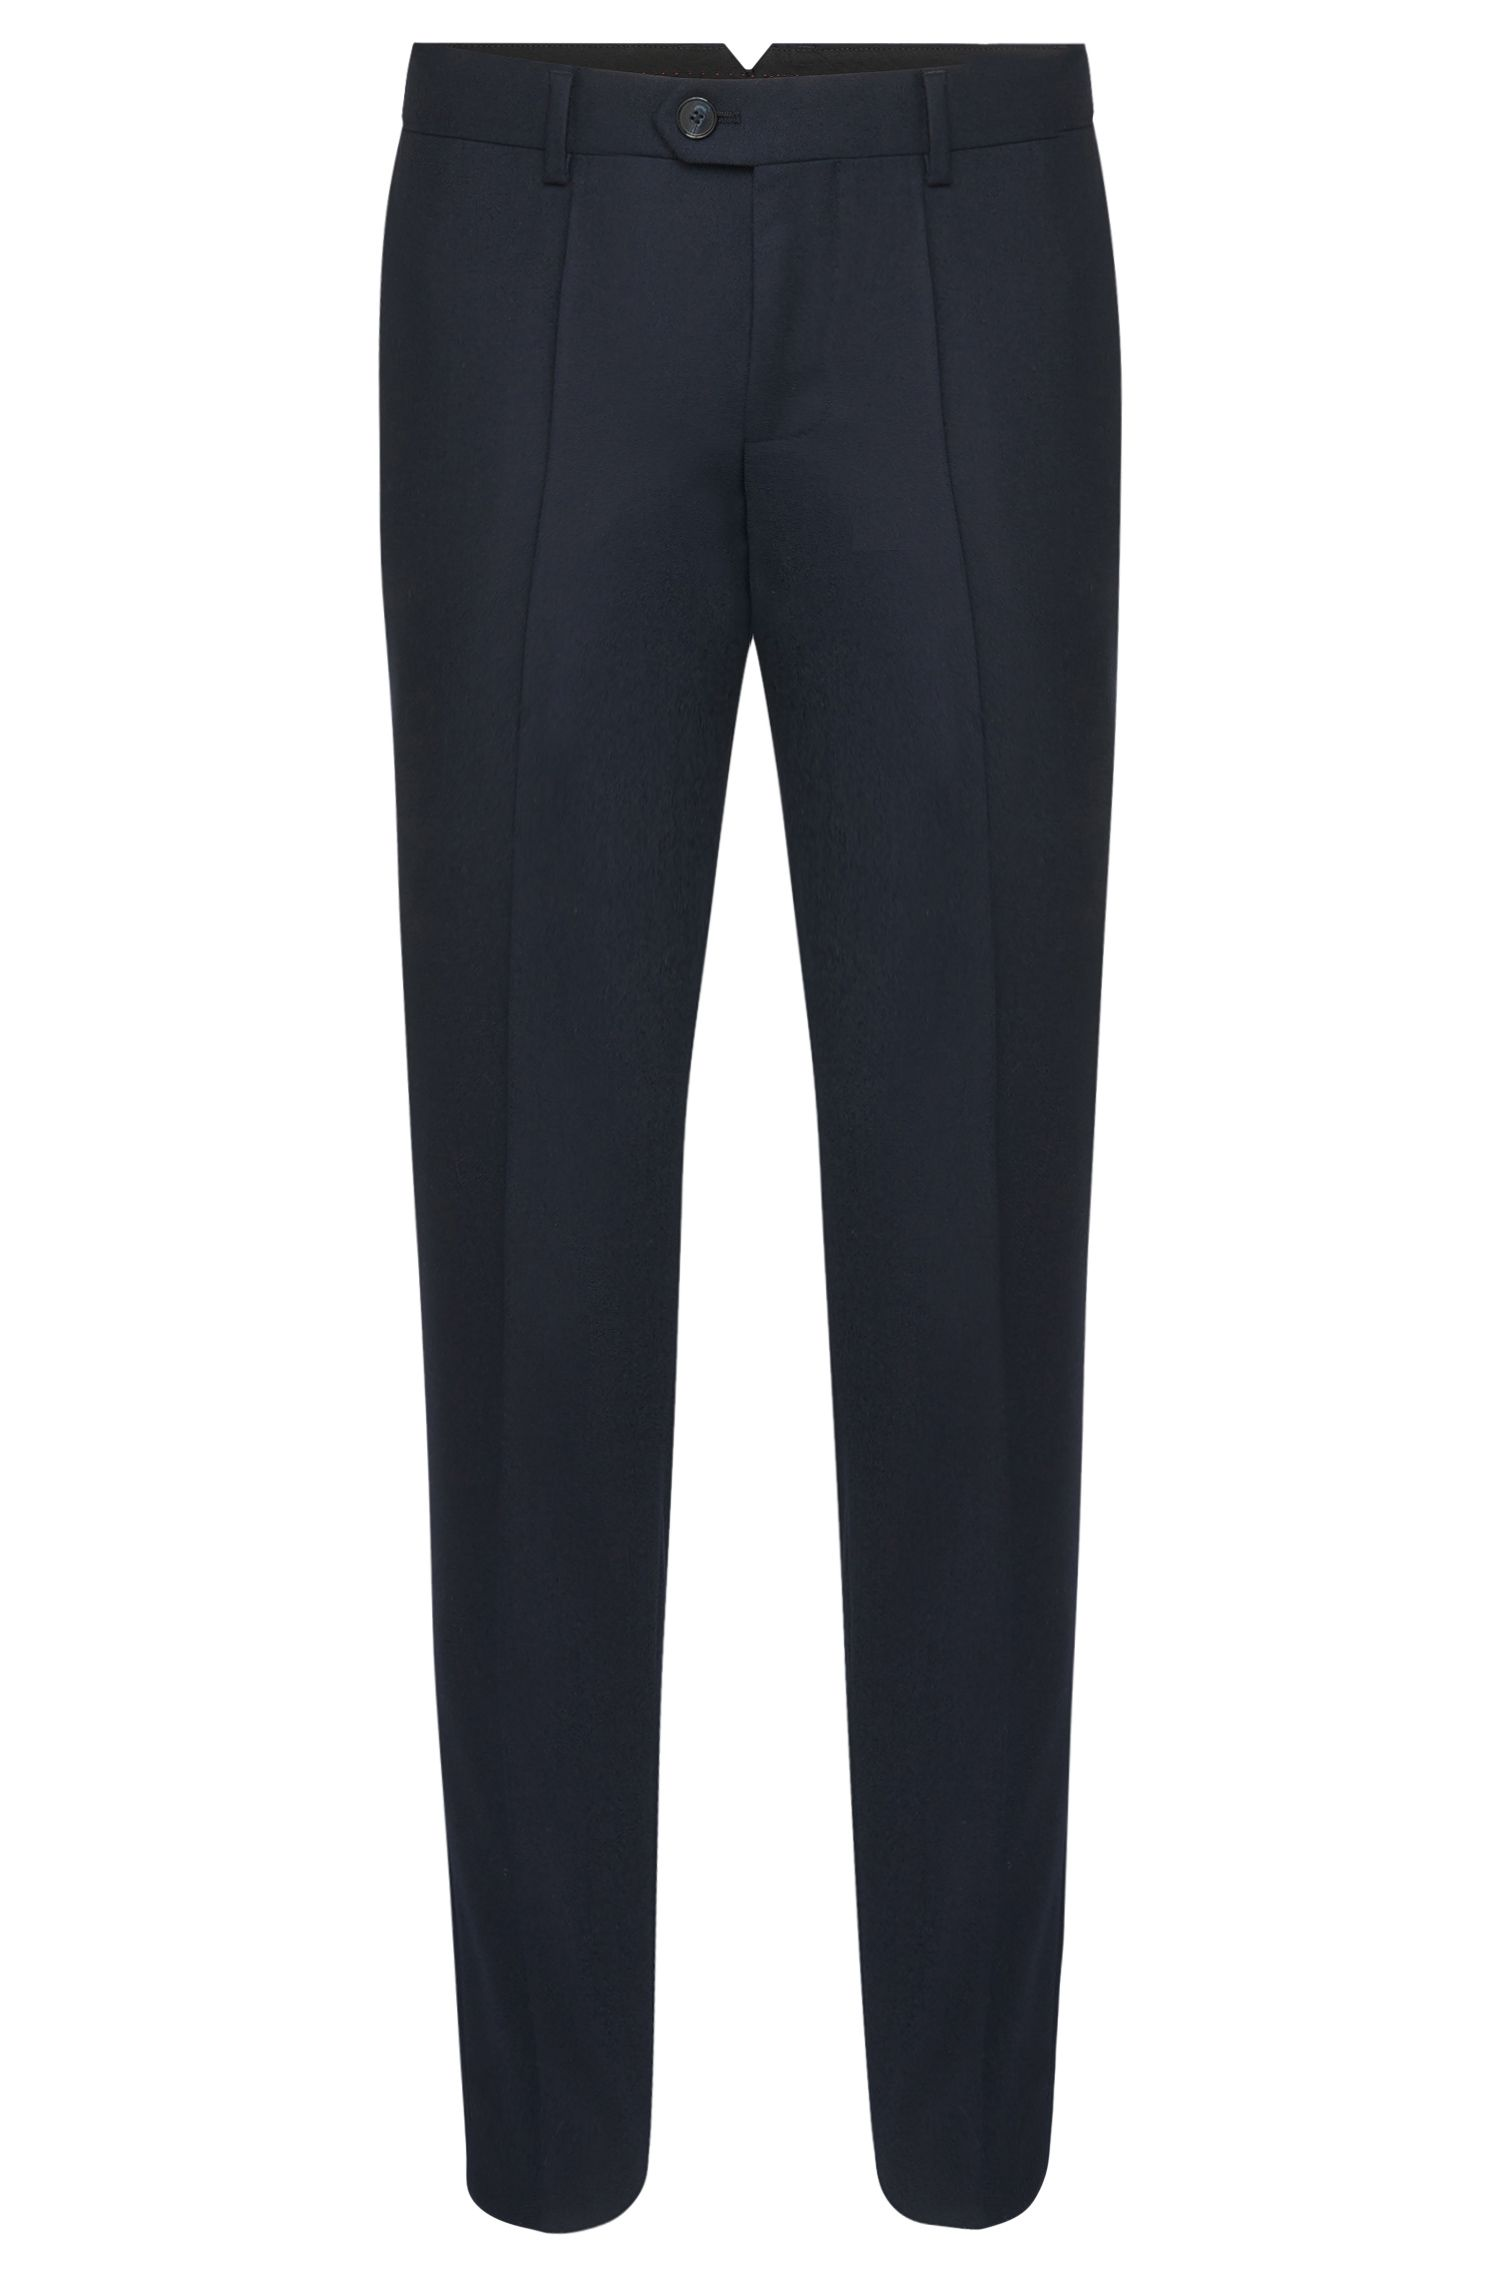 Pantalon Tapered Fit en pure laine vierge finement chinée : « Hening »